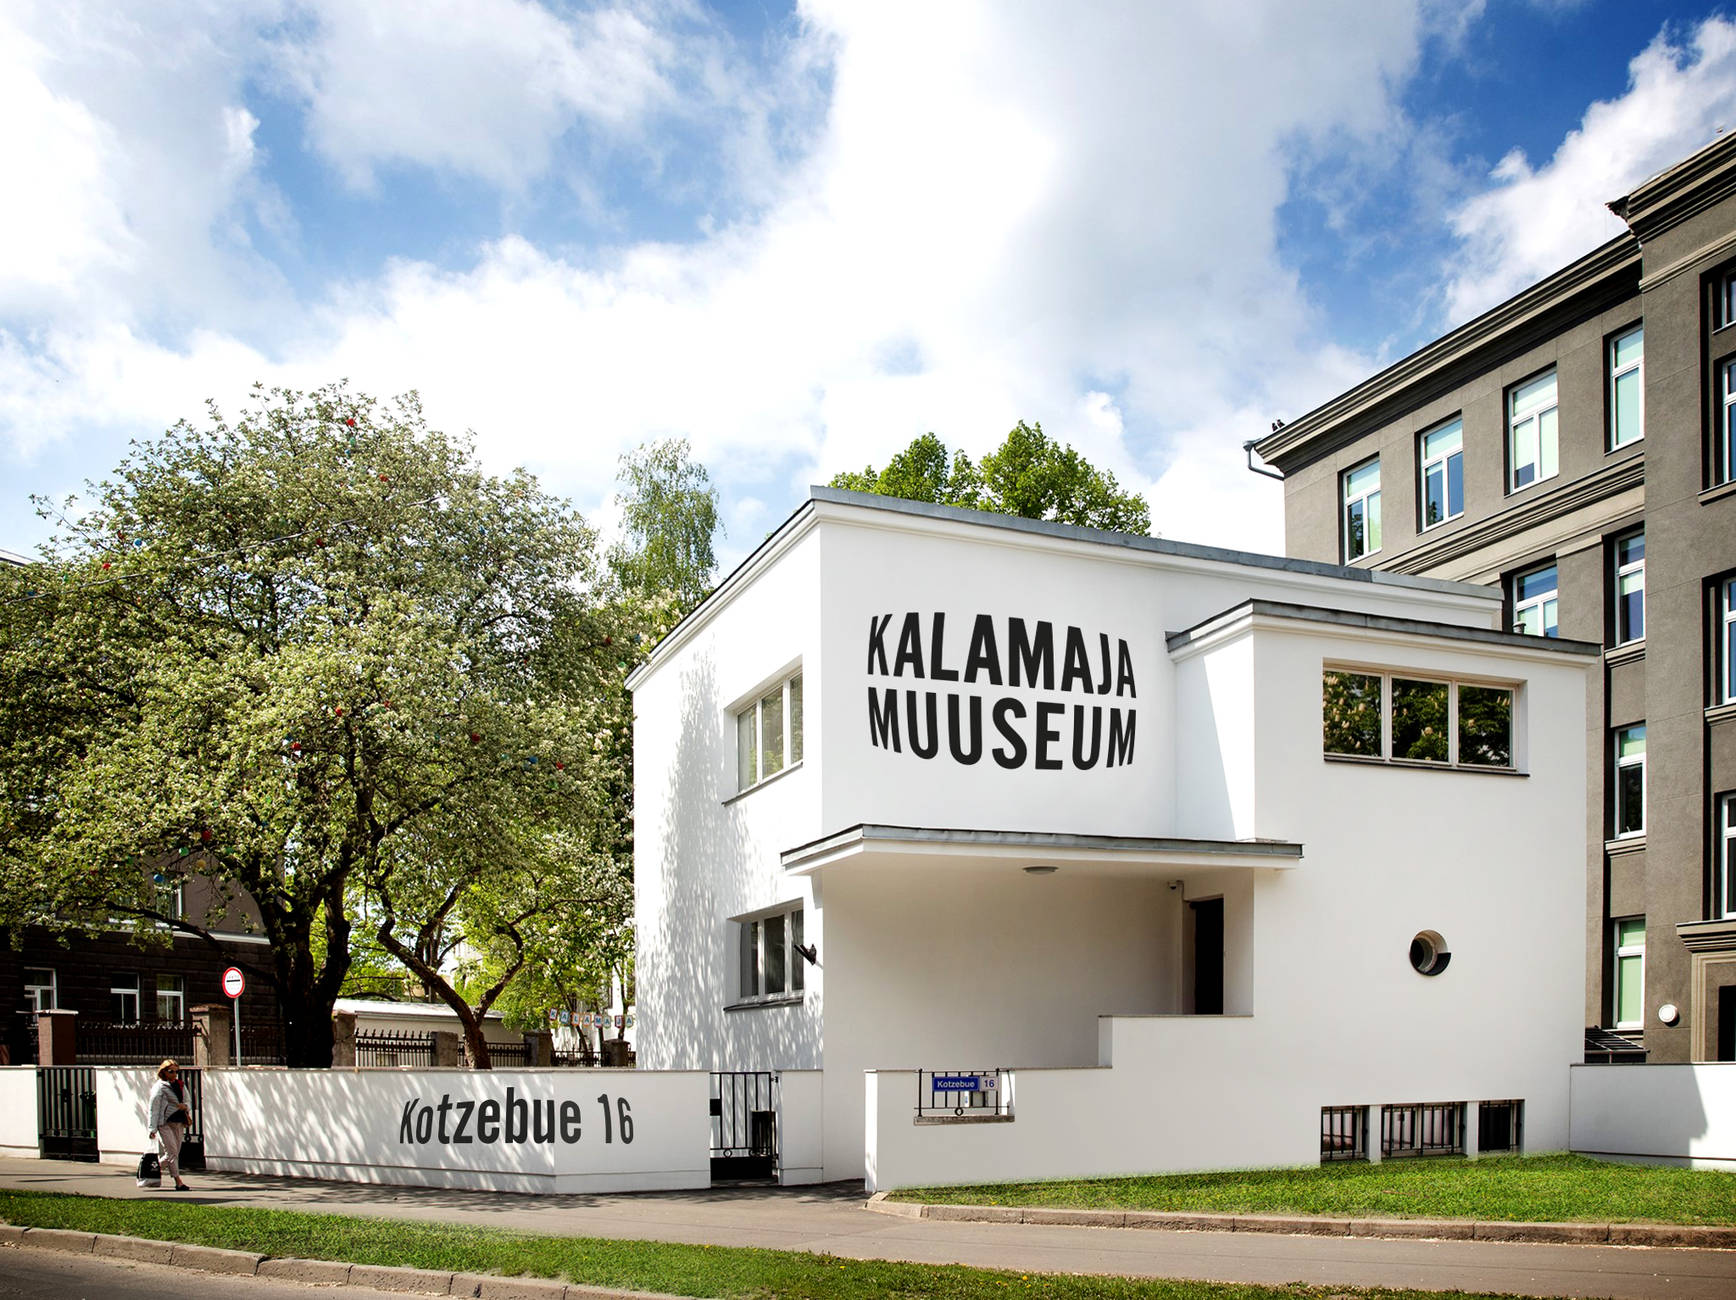 Photo by: Kalamaja Museum / Tallinn City Museum